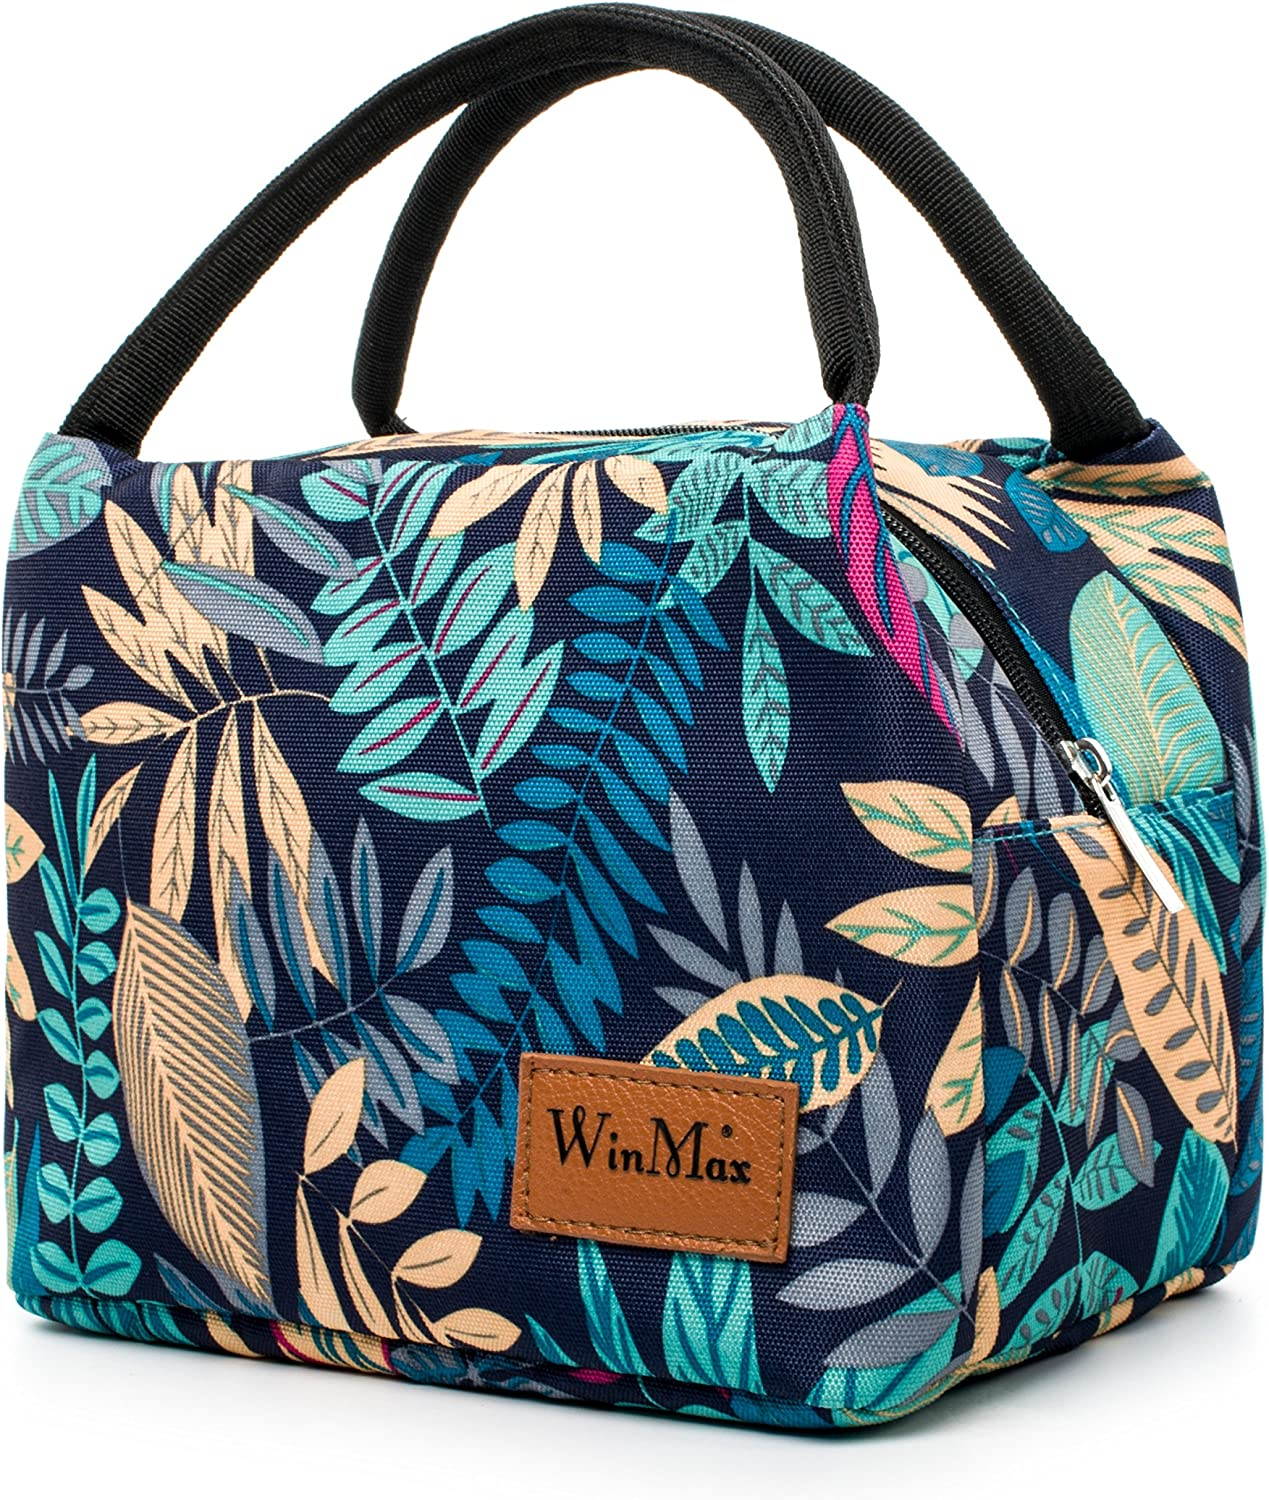 Insulated Lunch Box Cooler Bag Lunch Bags Reusable Lunch Tote for Working Women/Girls/Kids(Green leafes)